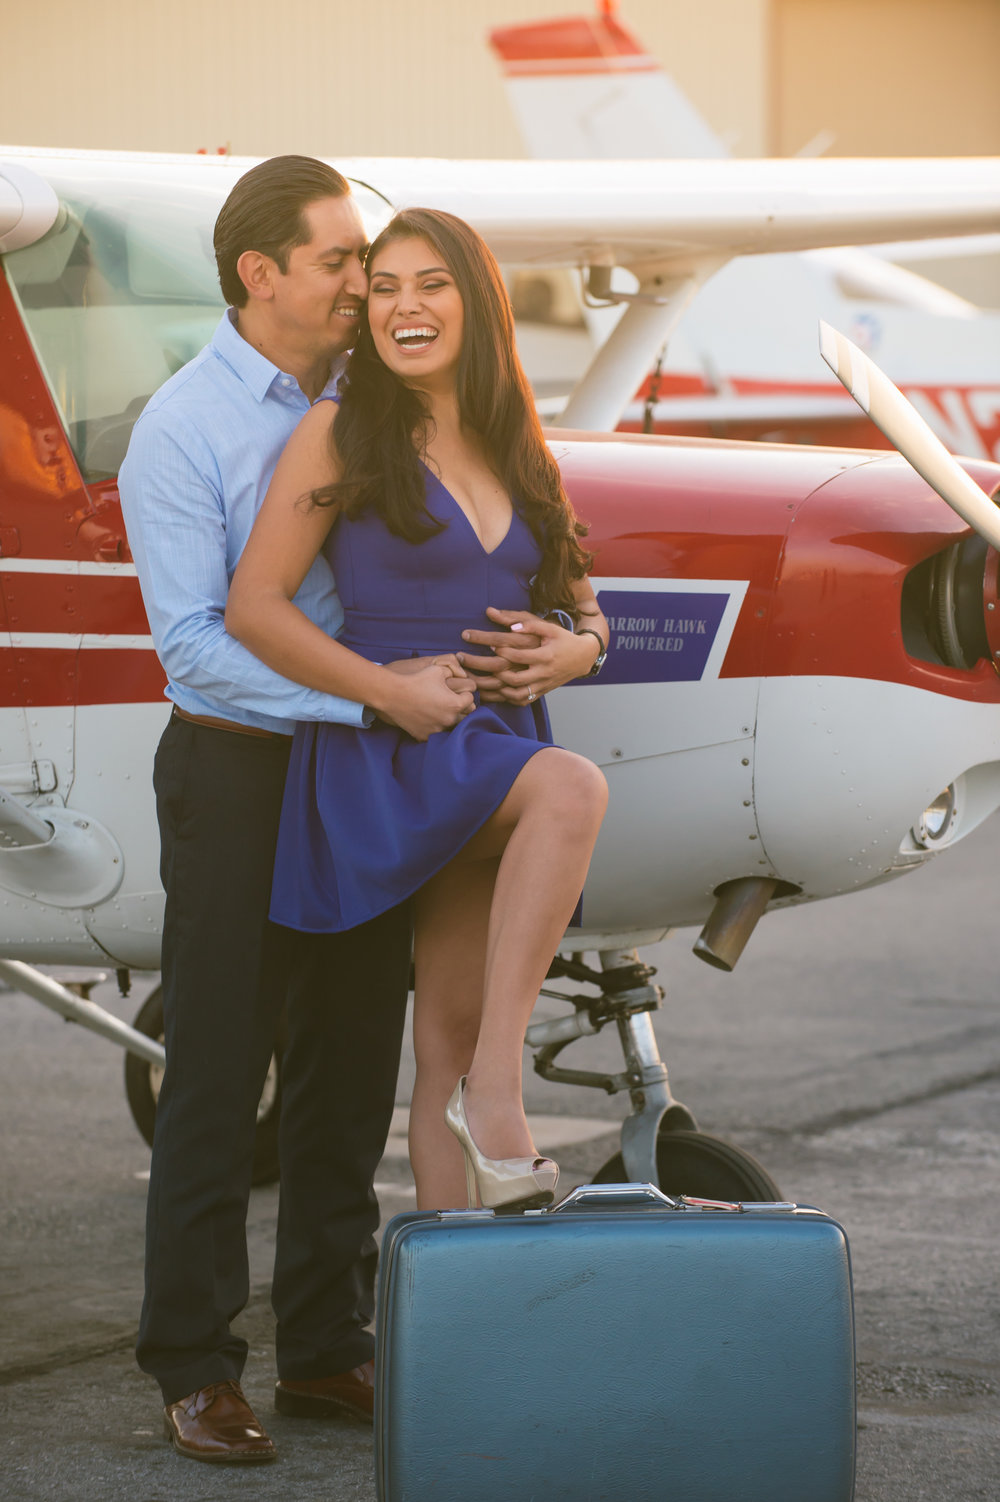 06Fullerton Airport Engagement Pictures.jpg